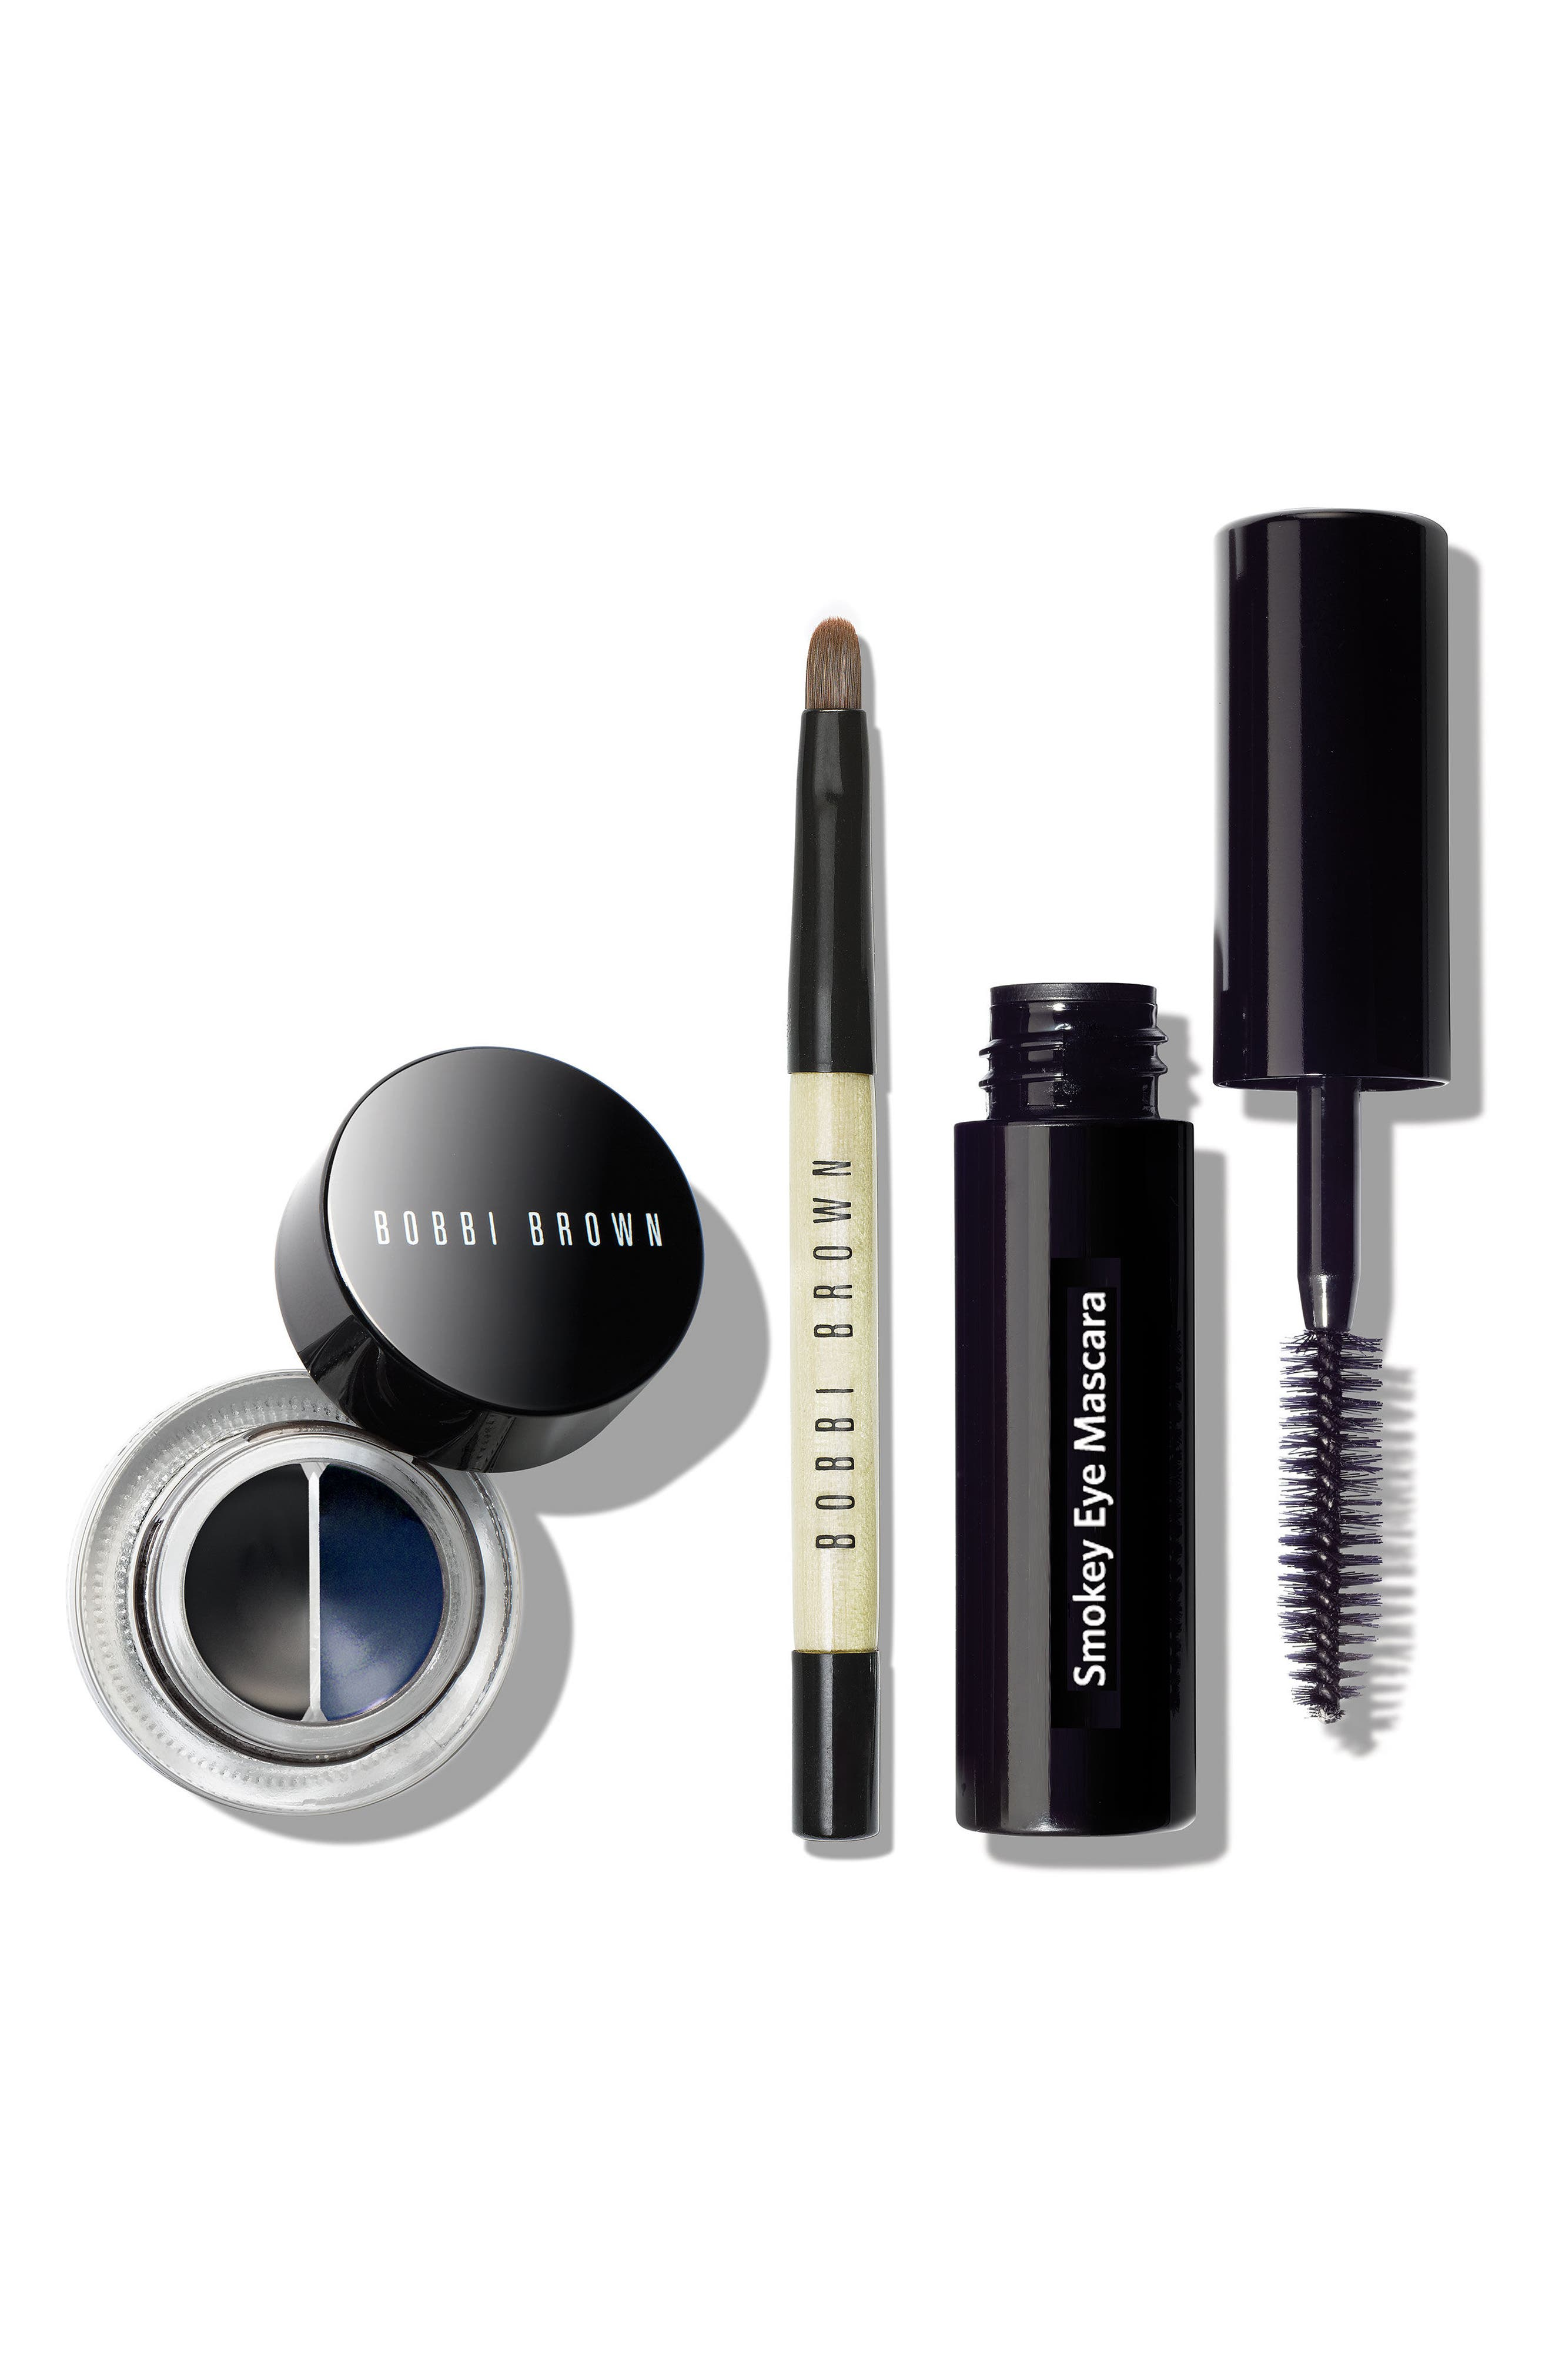 Bobbi Brown Bobbi on Trend Graphic Liner Set ($51 Value)